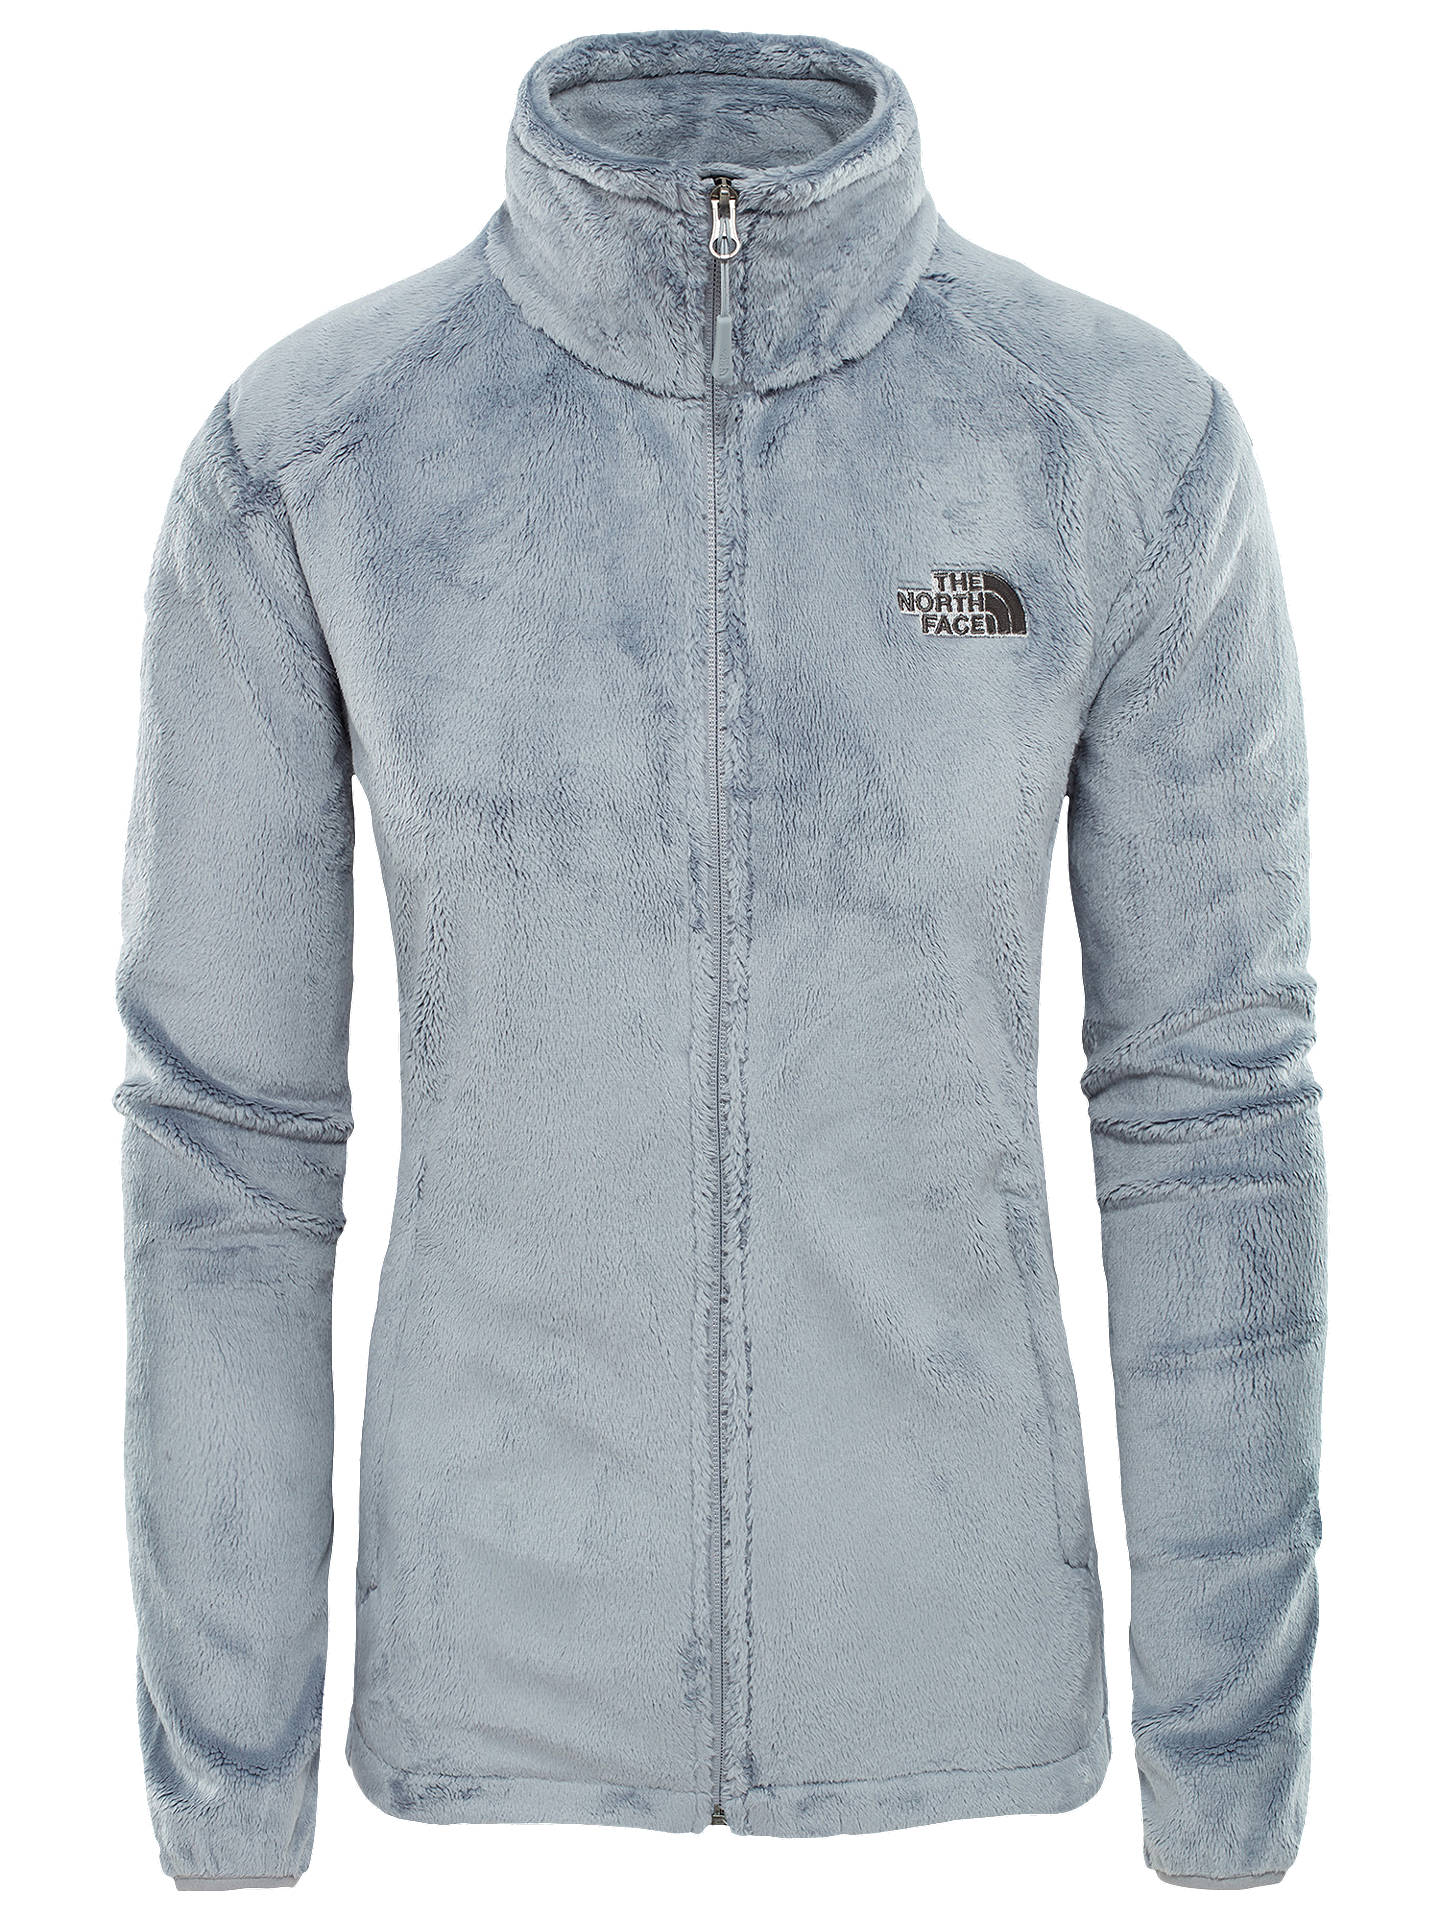 e8bfbcbbb The North Face Osito Women's Fleece Jacket at John Lewis & Partners